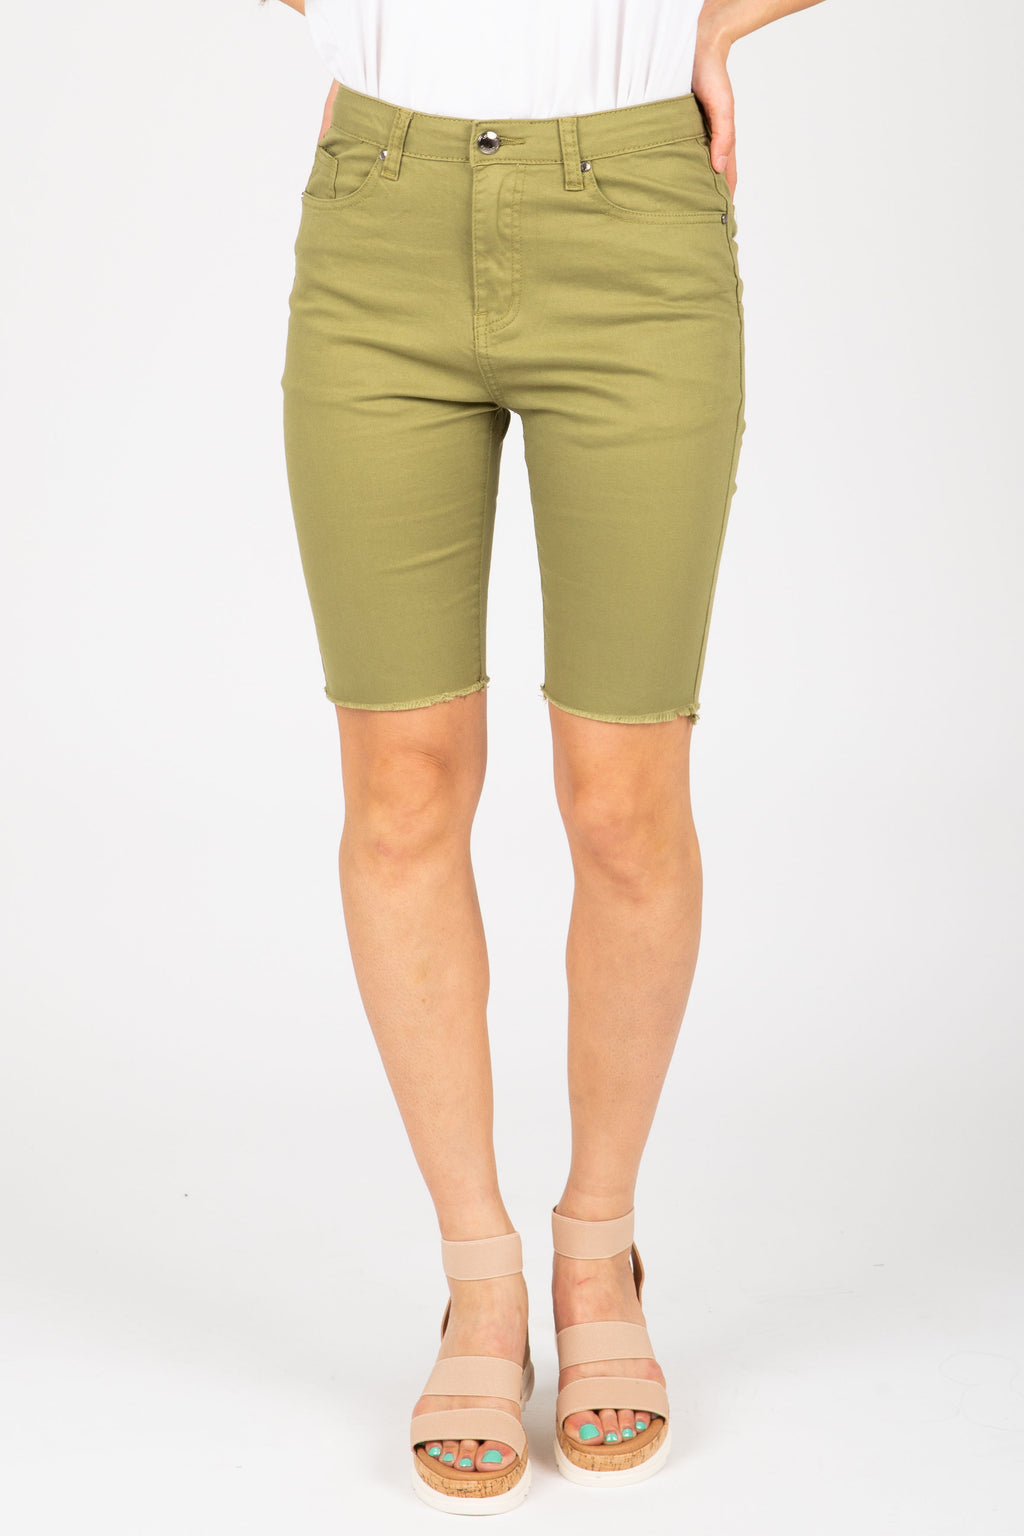 The Stretch Denim Biker Short in Olive, studio shoot; front view